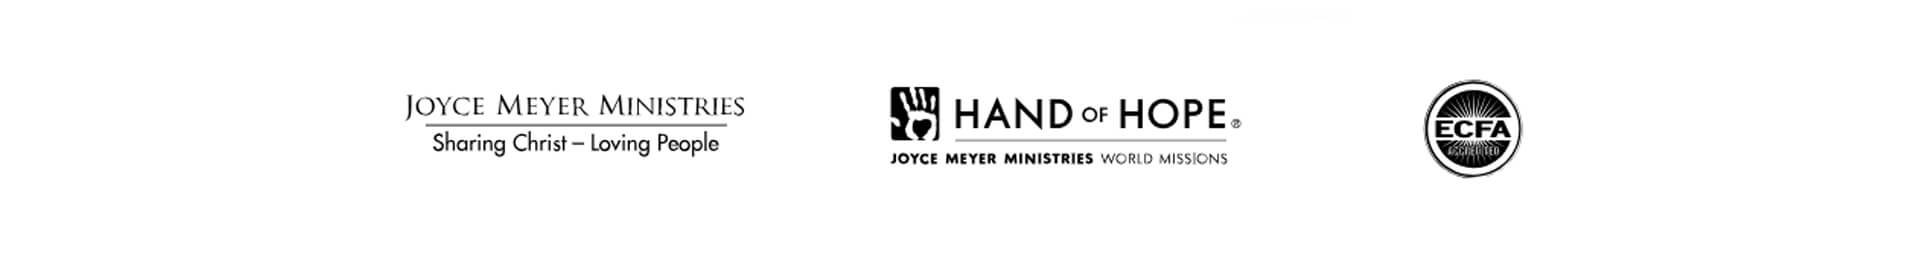 Joyce Meyer Ministries | Hand of Hope | ECFA